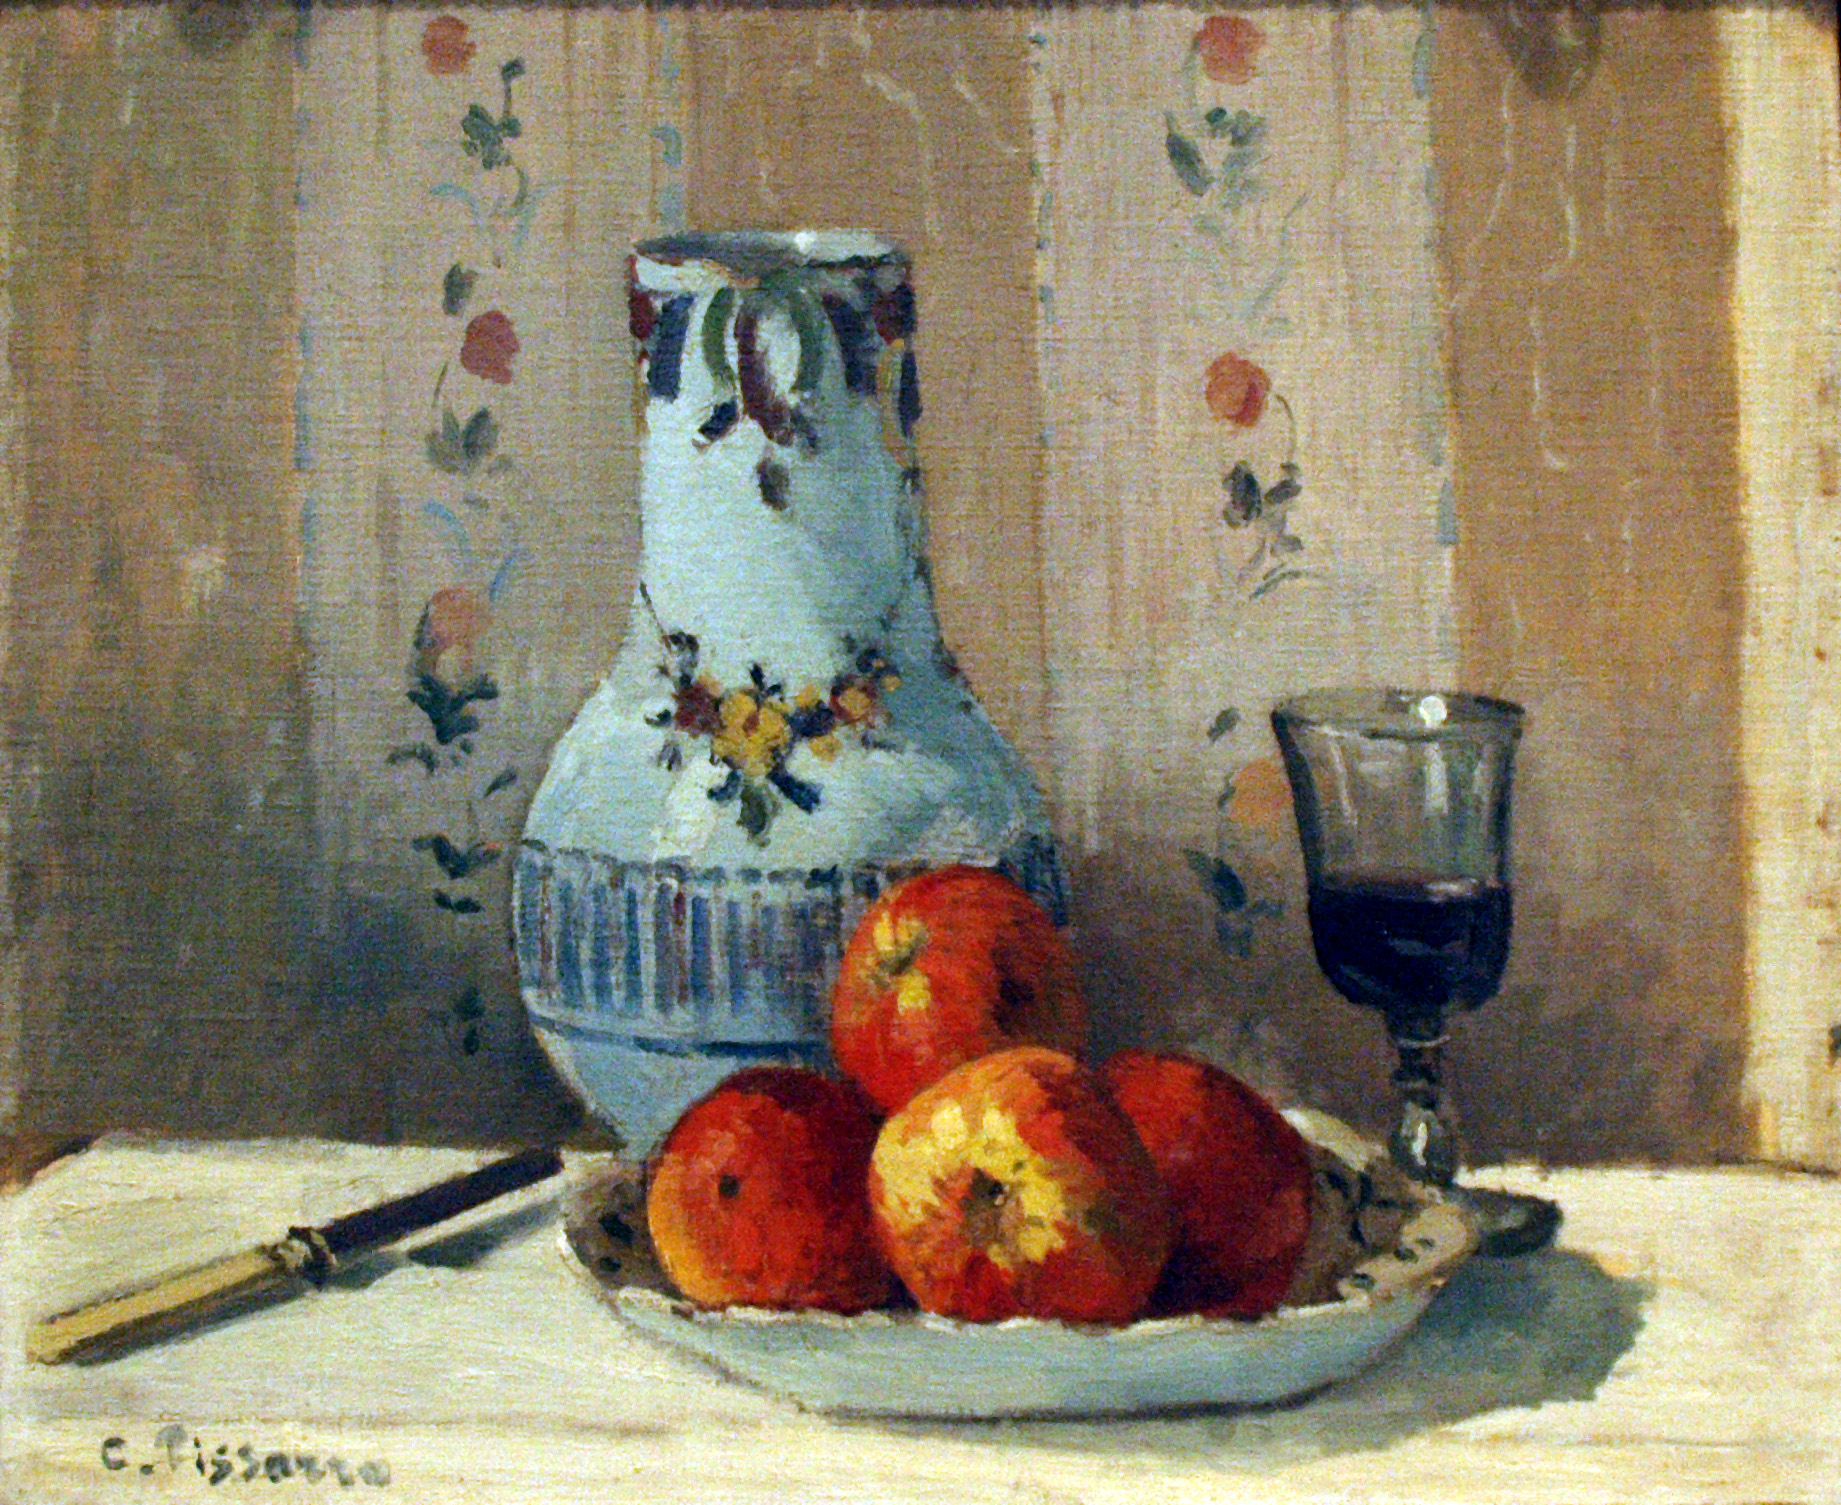 Pissarro_-_Still_Life_with_Apples_and_Pitcher.JPG